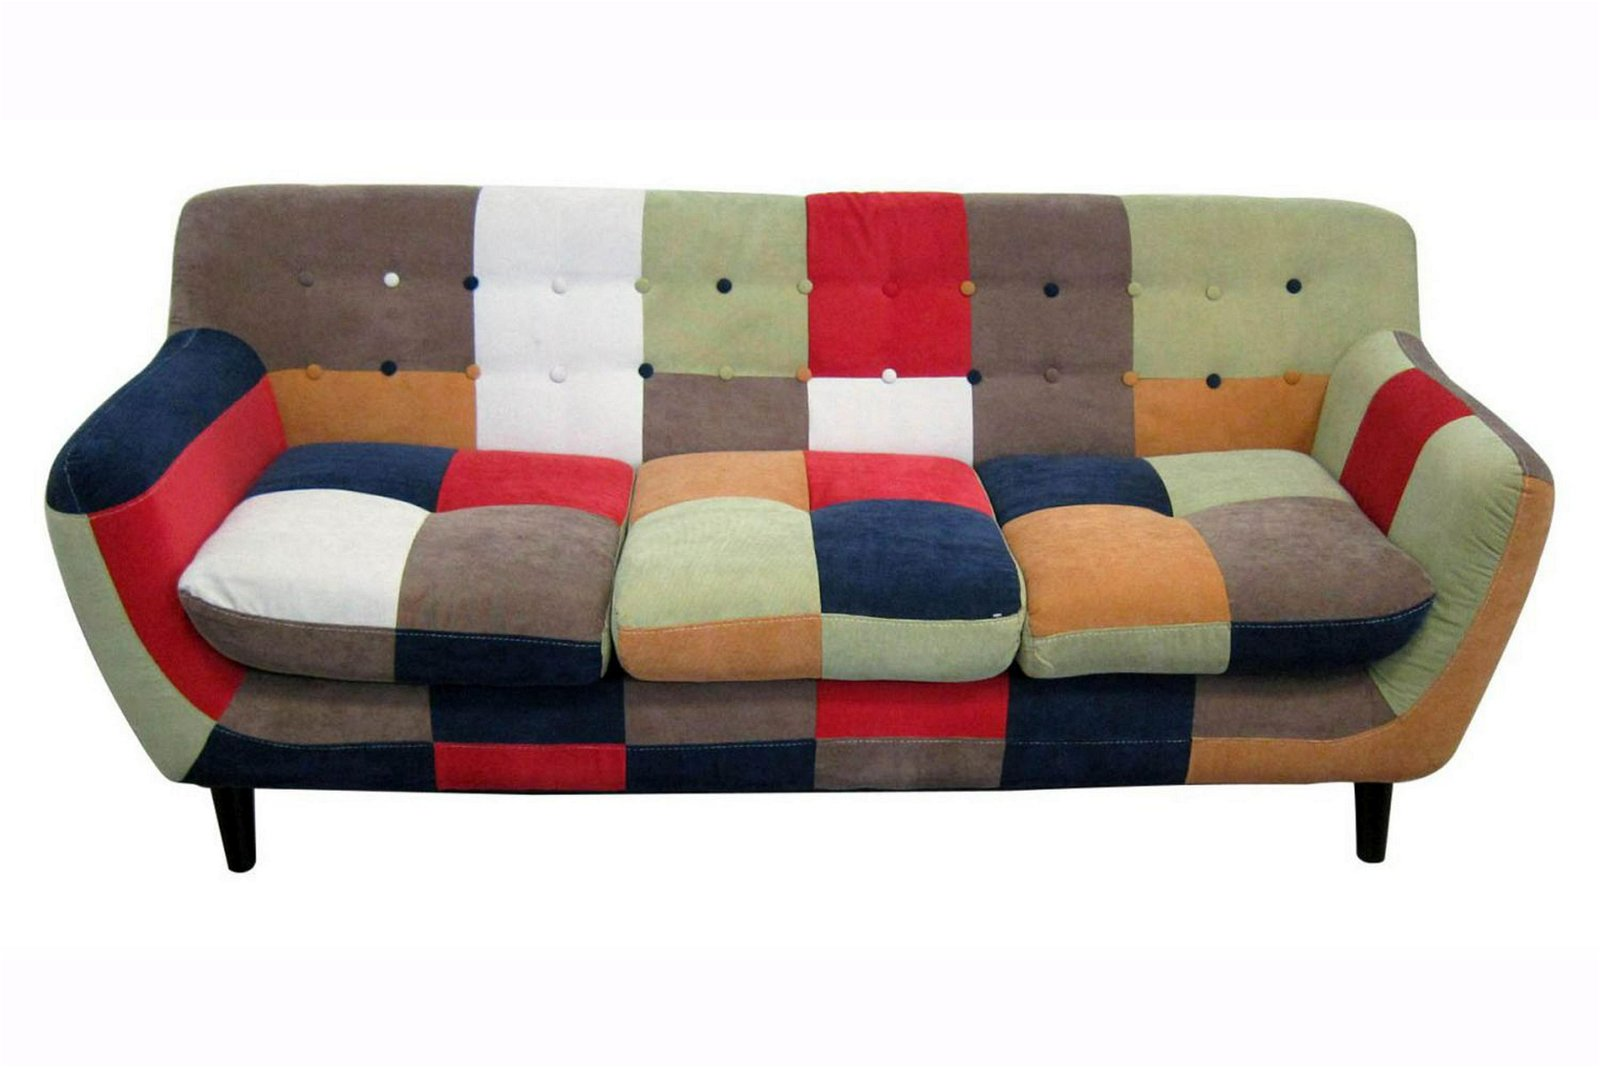 Contemporary European-designed sofa